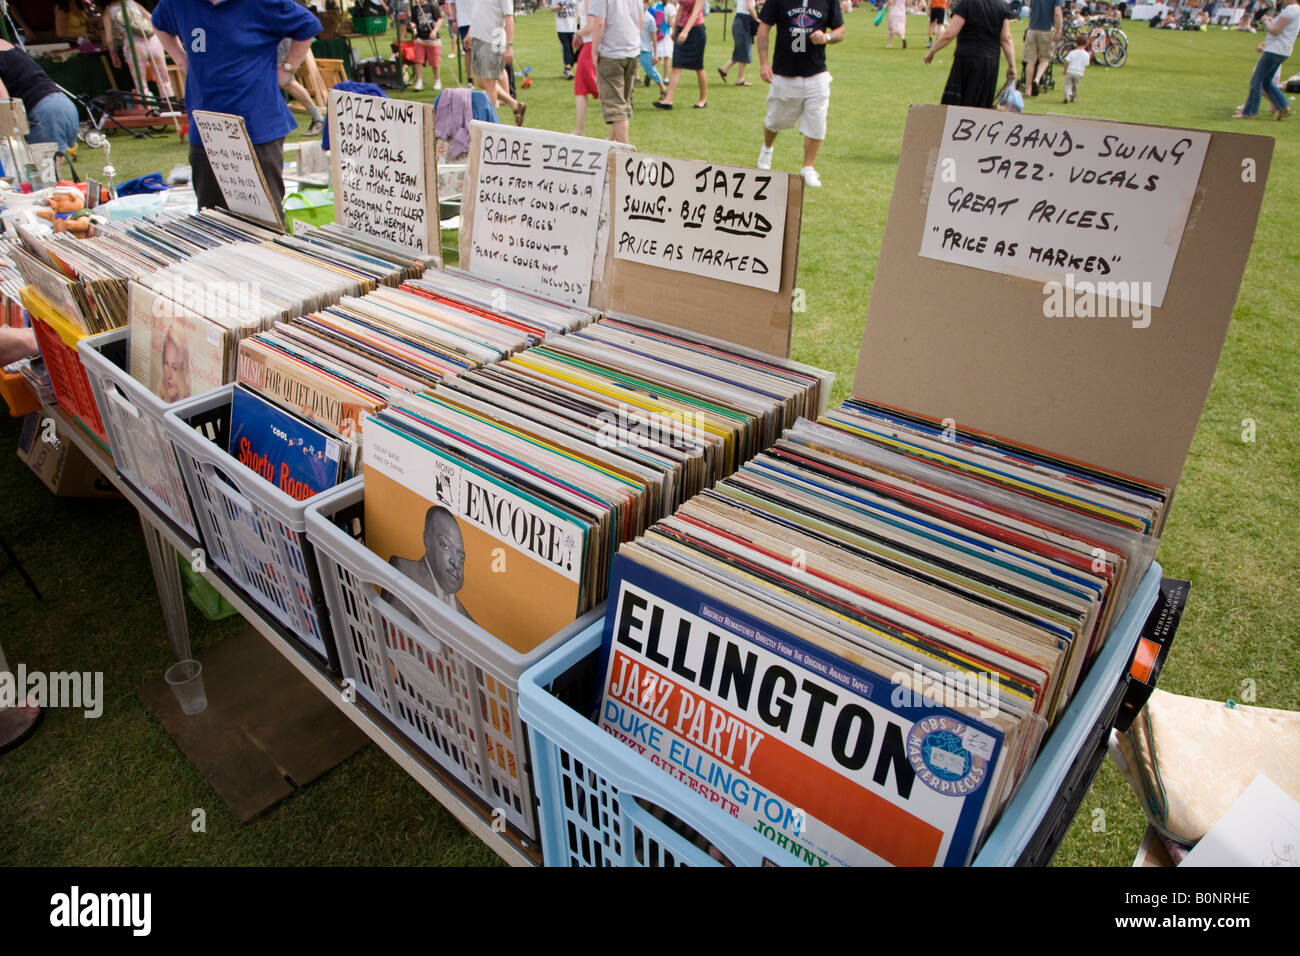 jazz lp vinyl records for sale at a charity car boot stall at the stock photo 17689882 alamy. Black Bedroom Furniture Sets. Home Design Ideas